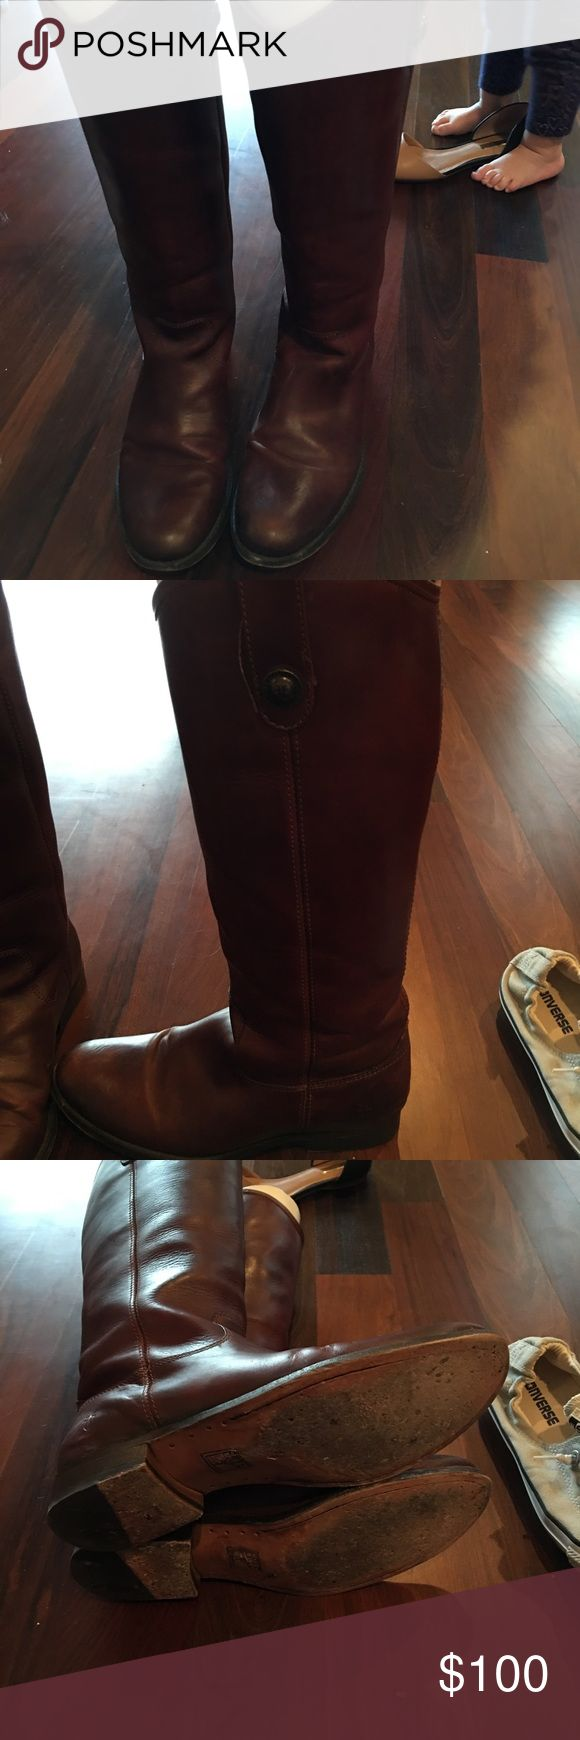 Frye Melissa button boots Frye Melissa button boots in EUC Frye Shoes Heeled Boots